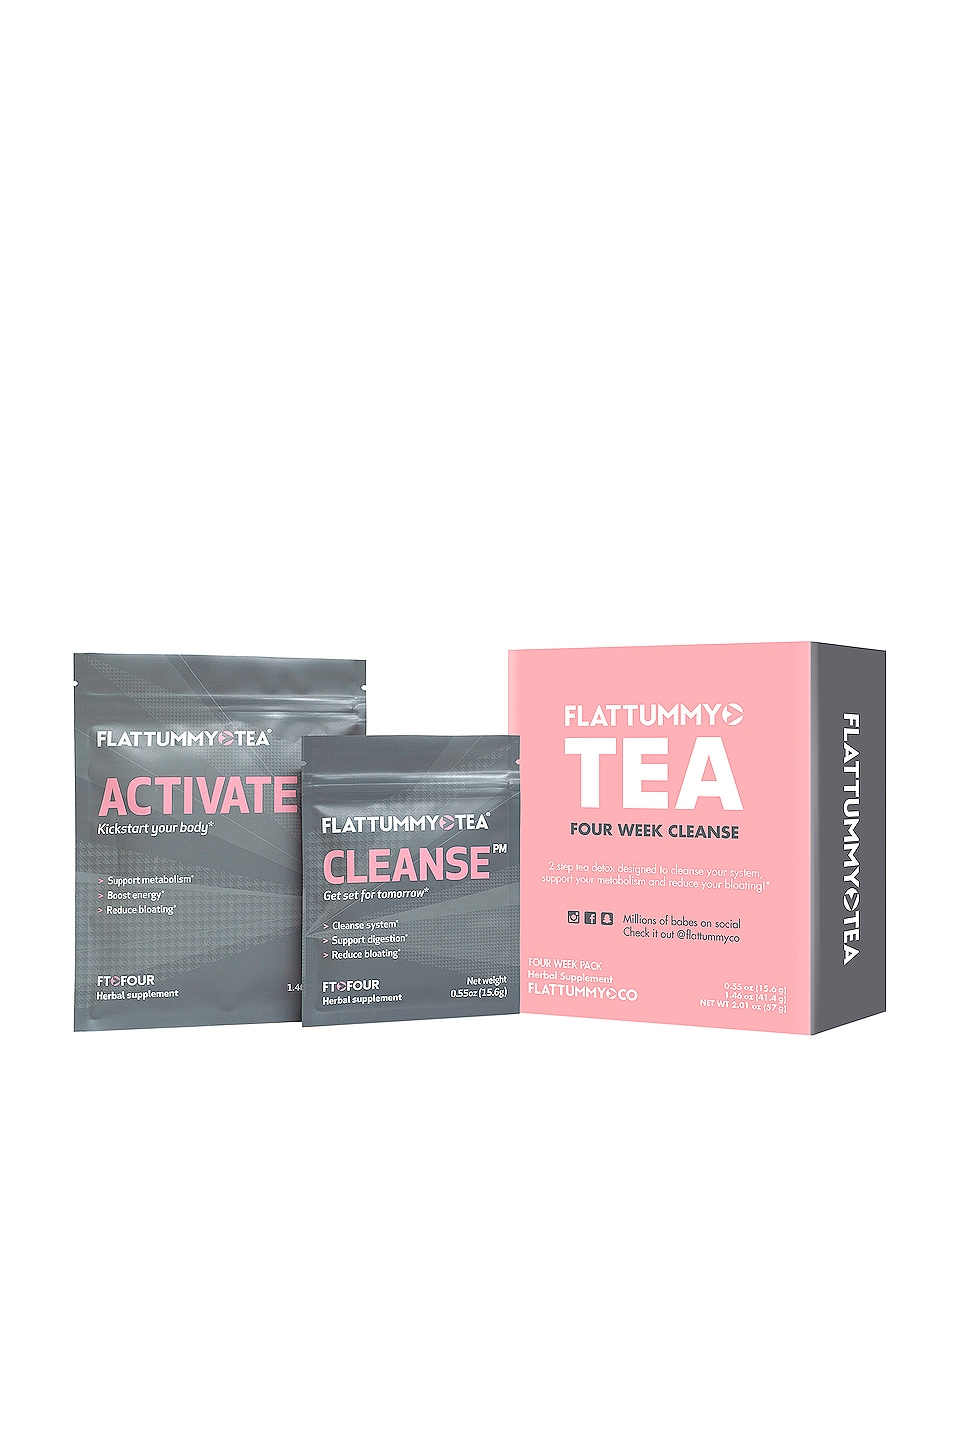 FLAT TUMMY TEA FOUR WEEK CLEANSE